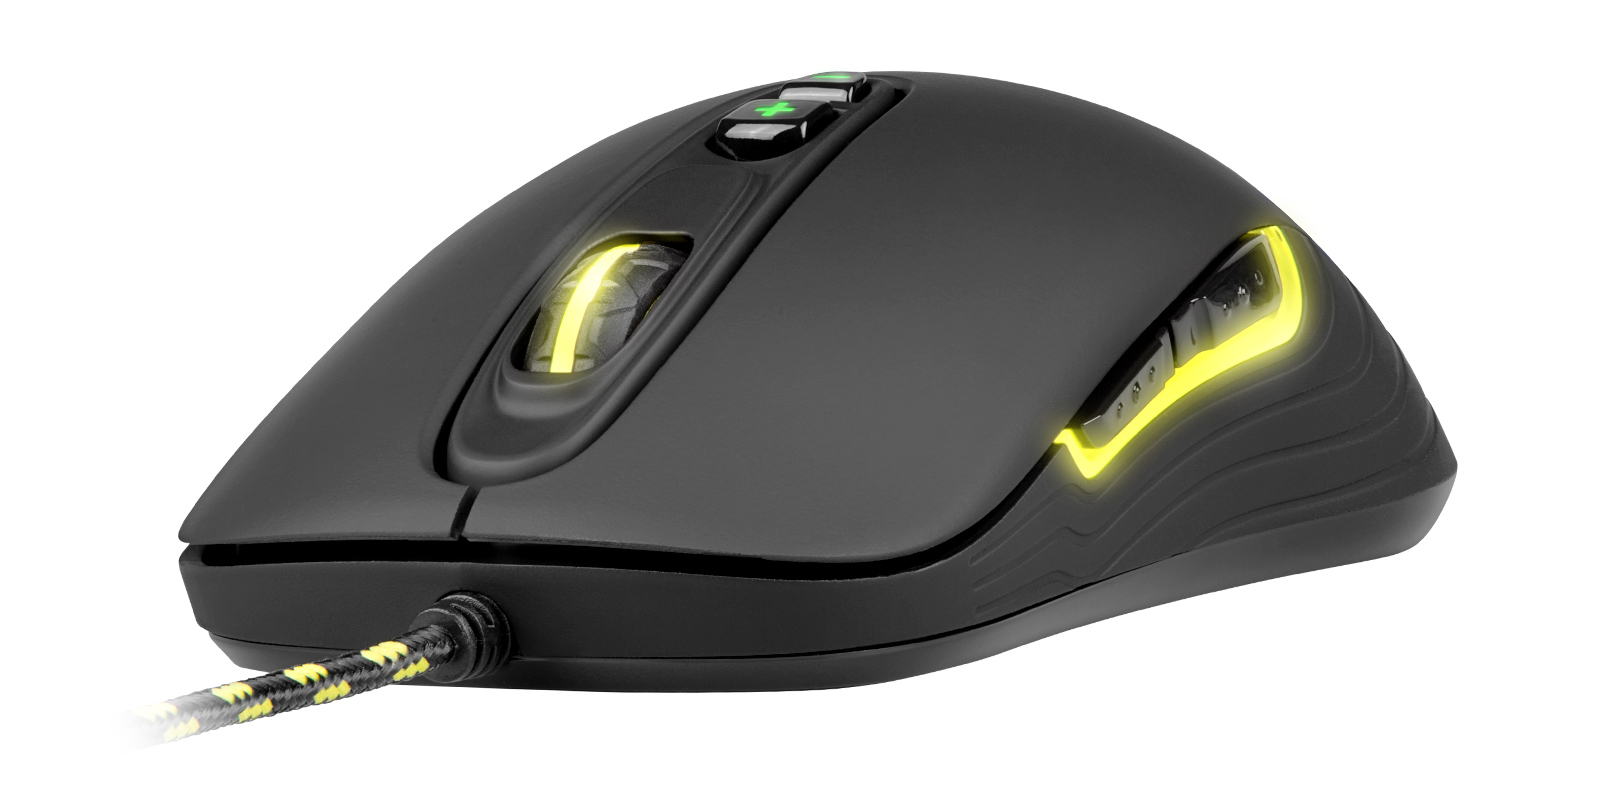 XTRFY XG-M2 M2 MICE USB OPTICAL 4000 DPI RIGHT-HAND BLACK